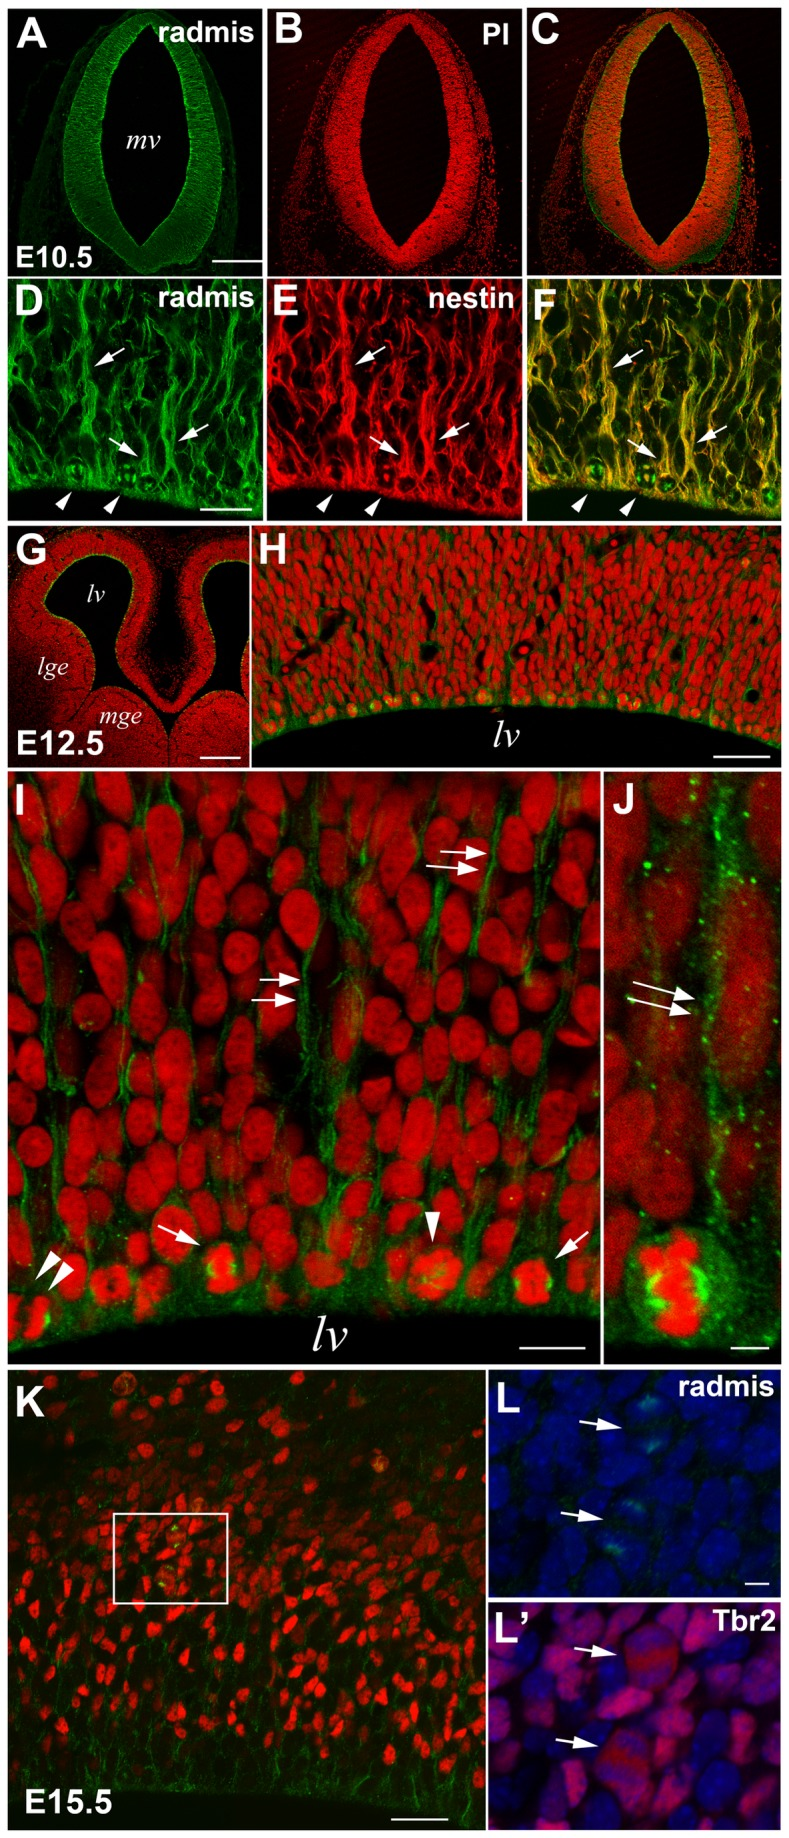 Radmis expression during embryonic CNS development. ( A – C ) E10.5 neural tube of the metencephalon immunostained for radmis ( A , green ) and counterstained with propidium iodide (PI) ( B , red ), showing uniformly distributed radmis in neuroepithelial cells throughout the neural tube. Note the significantly lower immunoreactivity of radmis in the connective tissue outside the neural tube. ( D – F ) Higher magnification view of the ventricular region of an E10.5 neural tube double-stained for radmis ( D , green ) and nestin ( E , red ). Radmis is expressed in the mitotic spindles ( arrowheads ) and nestin-positive radial fibers ( arrows ) of neuroepithelial cells. ( G – J ) E12.5 forebrain immunostained for radmis ( green ) and PI stained ( red ). ( H ) Cerebral neocortex at E12.5. ( I ) Magnified view of the ventricular surface of (H) showing accumulation of radmis in the mitotic spindles ( arrowhead , prometaphase; arrows , metaphase; double arrowhead , anaphase) of dividing NSPCs located at the ventricular surface, and their radial fibers ( double arrows ). ( J ) A dividing NSC at metaphase showing robust distribution of radmis in the mitotic spindle and its extending radial fiber ( double arrows ). ( K – L ) E15.5 neocortex immunostained for radmis ( green ) and <t>Tbr2</t> ( red ). ( L , L ') Higher magnification of the boxed area in K. Arrows depicted the radmis immunoreactivity ( L ) in mitotic spindles of Tbr2 ( L ')-positive dividing cells within the SVZ. Chromosome staining ( blue ) indicated that these two dividing cells were in anaphase. Scale bars: A – C , 250 μm; D – E , 20 μm; G , 200 μm; H , 31 μm; I , 12 μm; J , 3 μm; K , 250 μm; L , 5 μm. lv , lateral ventricle; mge , medial ganglionic eminence; lge , lateral ganglionic eminence.